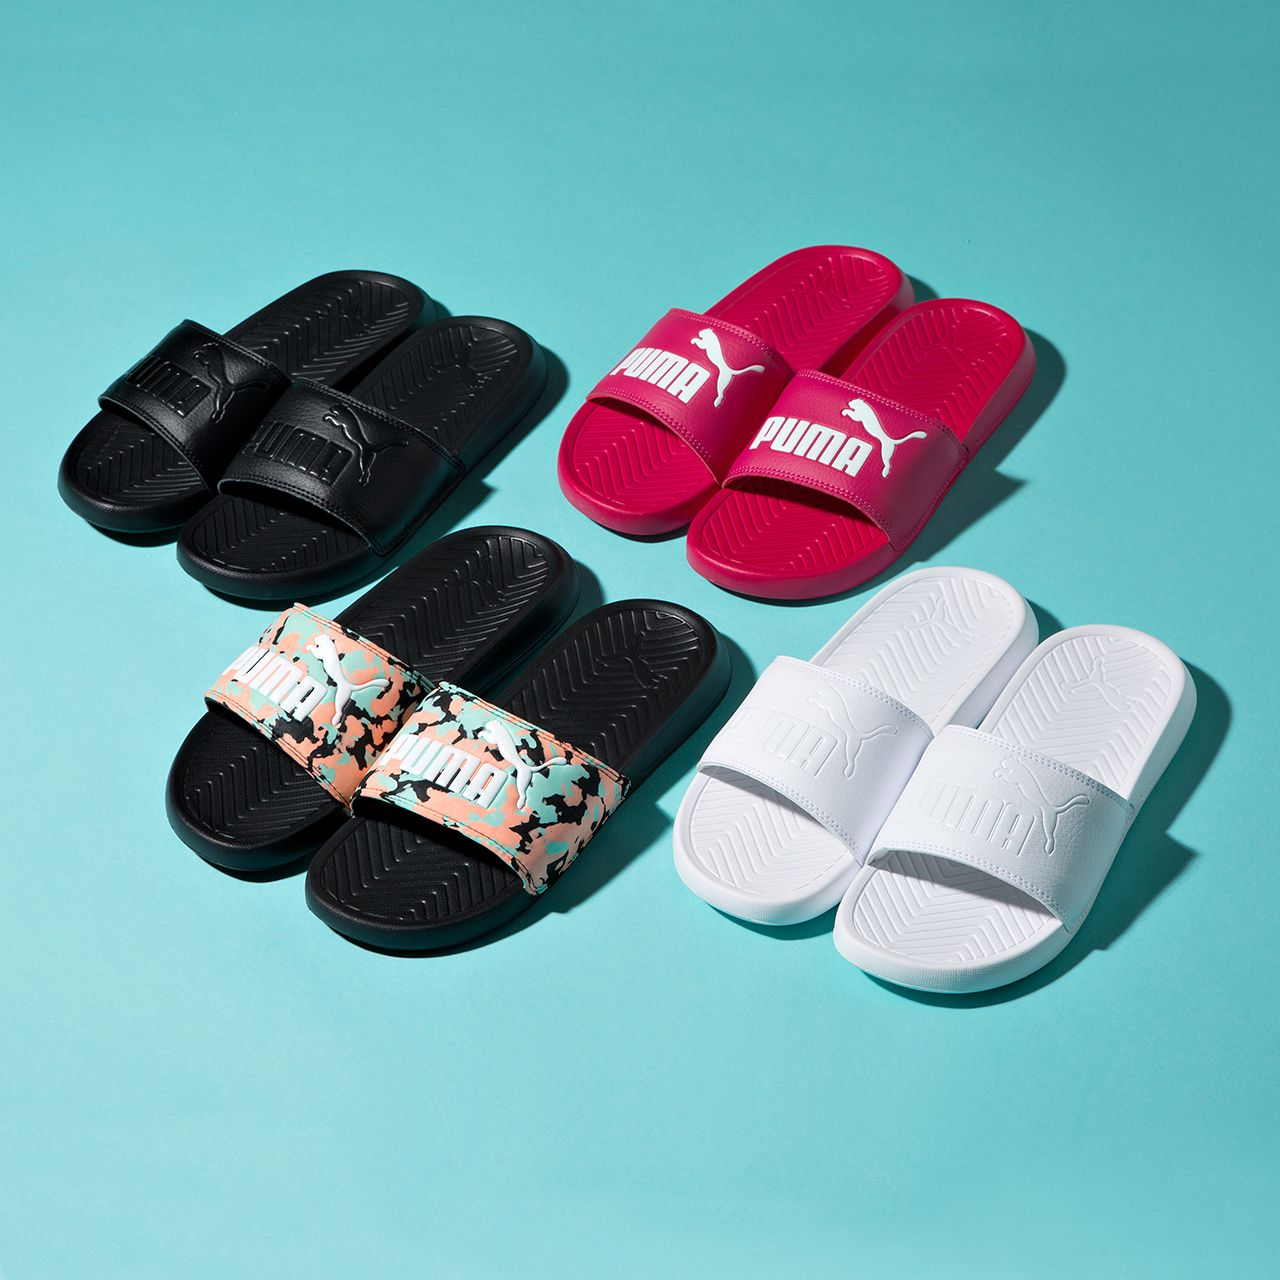 542b07f86fd Prepare for the holiday season with the Puma Womens Popcat Slide Sandal.